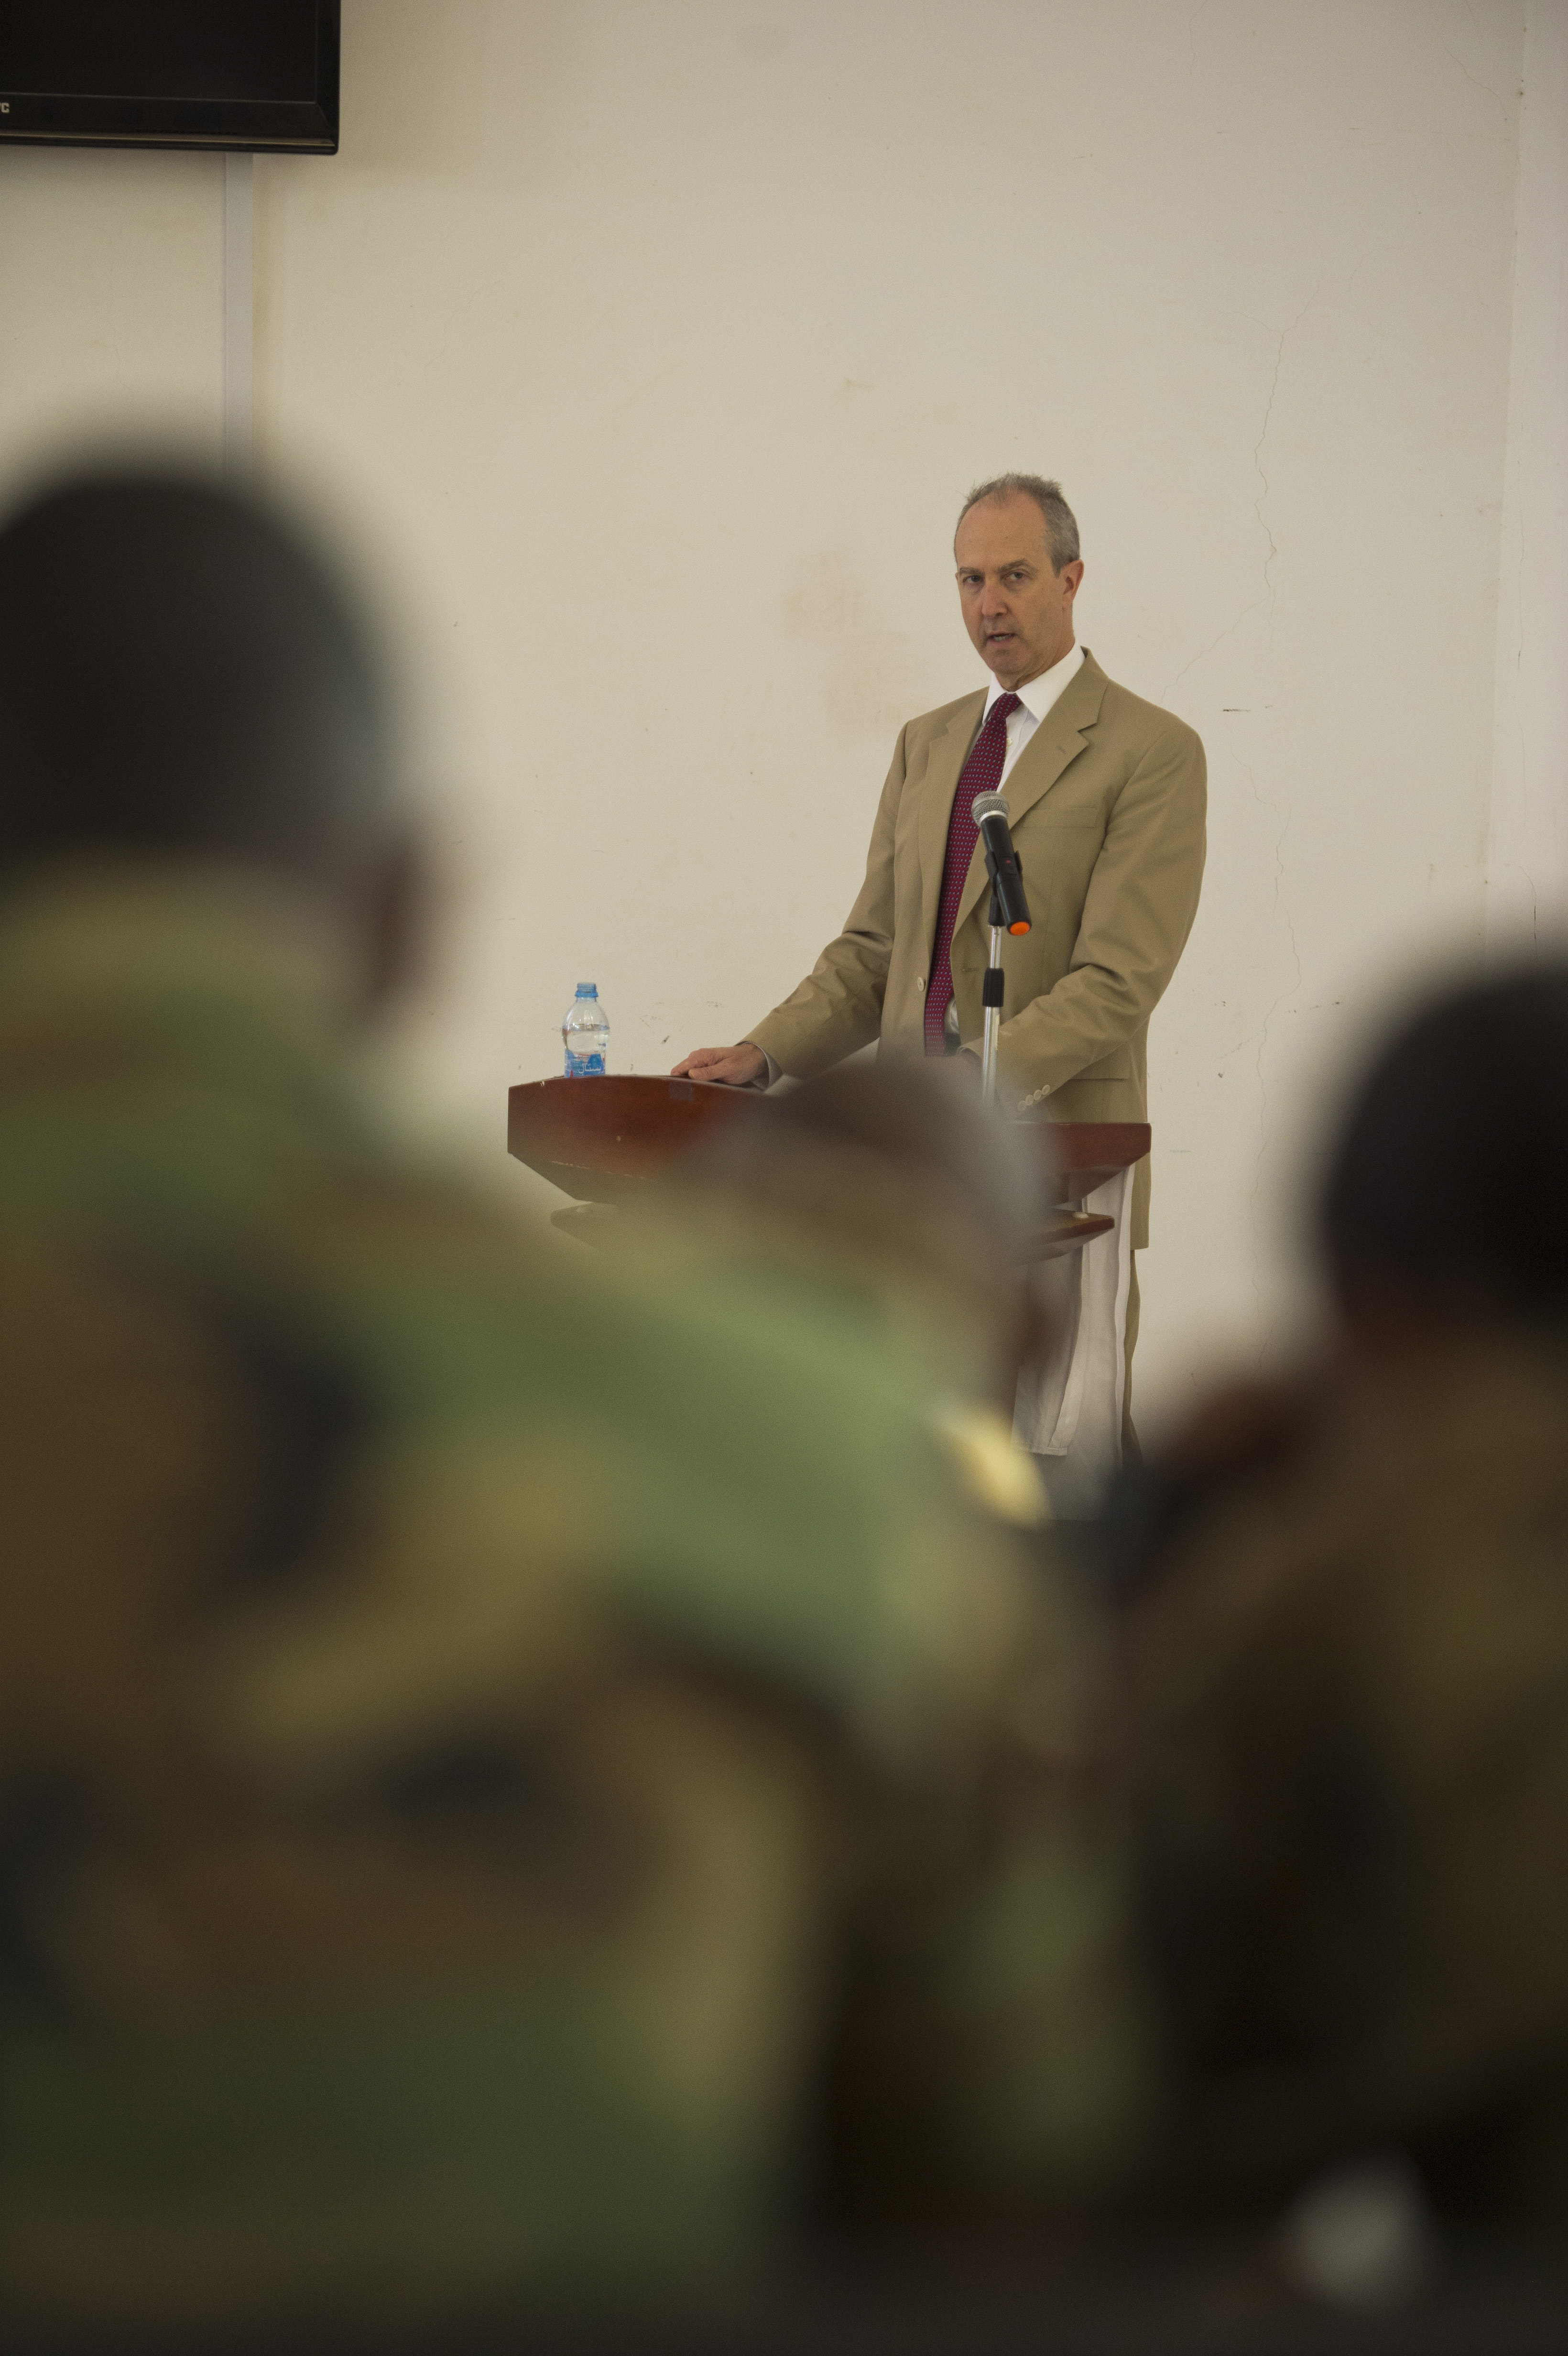 Tom Kelly, U.S. Ambassador to Djibouti, speaks to cadets at the first ever Geo-Strategy Meeting at the Joint Military Academy of Arta, Arta, Djibouti, April 20, 2015. Kelly was one of three guest speakers at the event discussing the importance of military and law enforcement leaders to plan for the protection of civilians and their livelihoods when performing military actions. (U.S. Air Force photo by Staff Sgt. Nathan Maysonet)